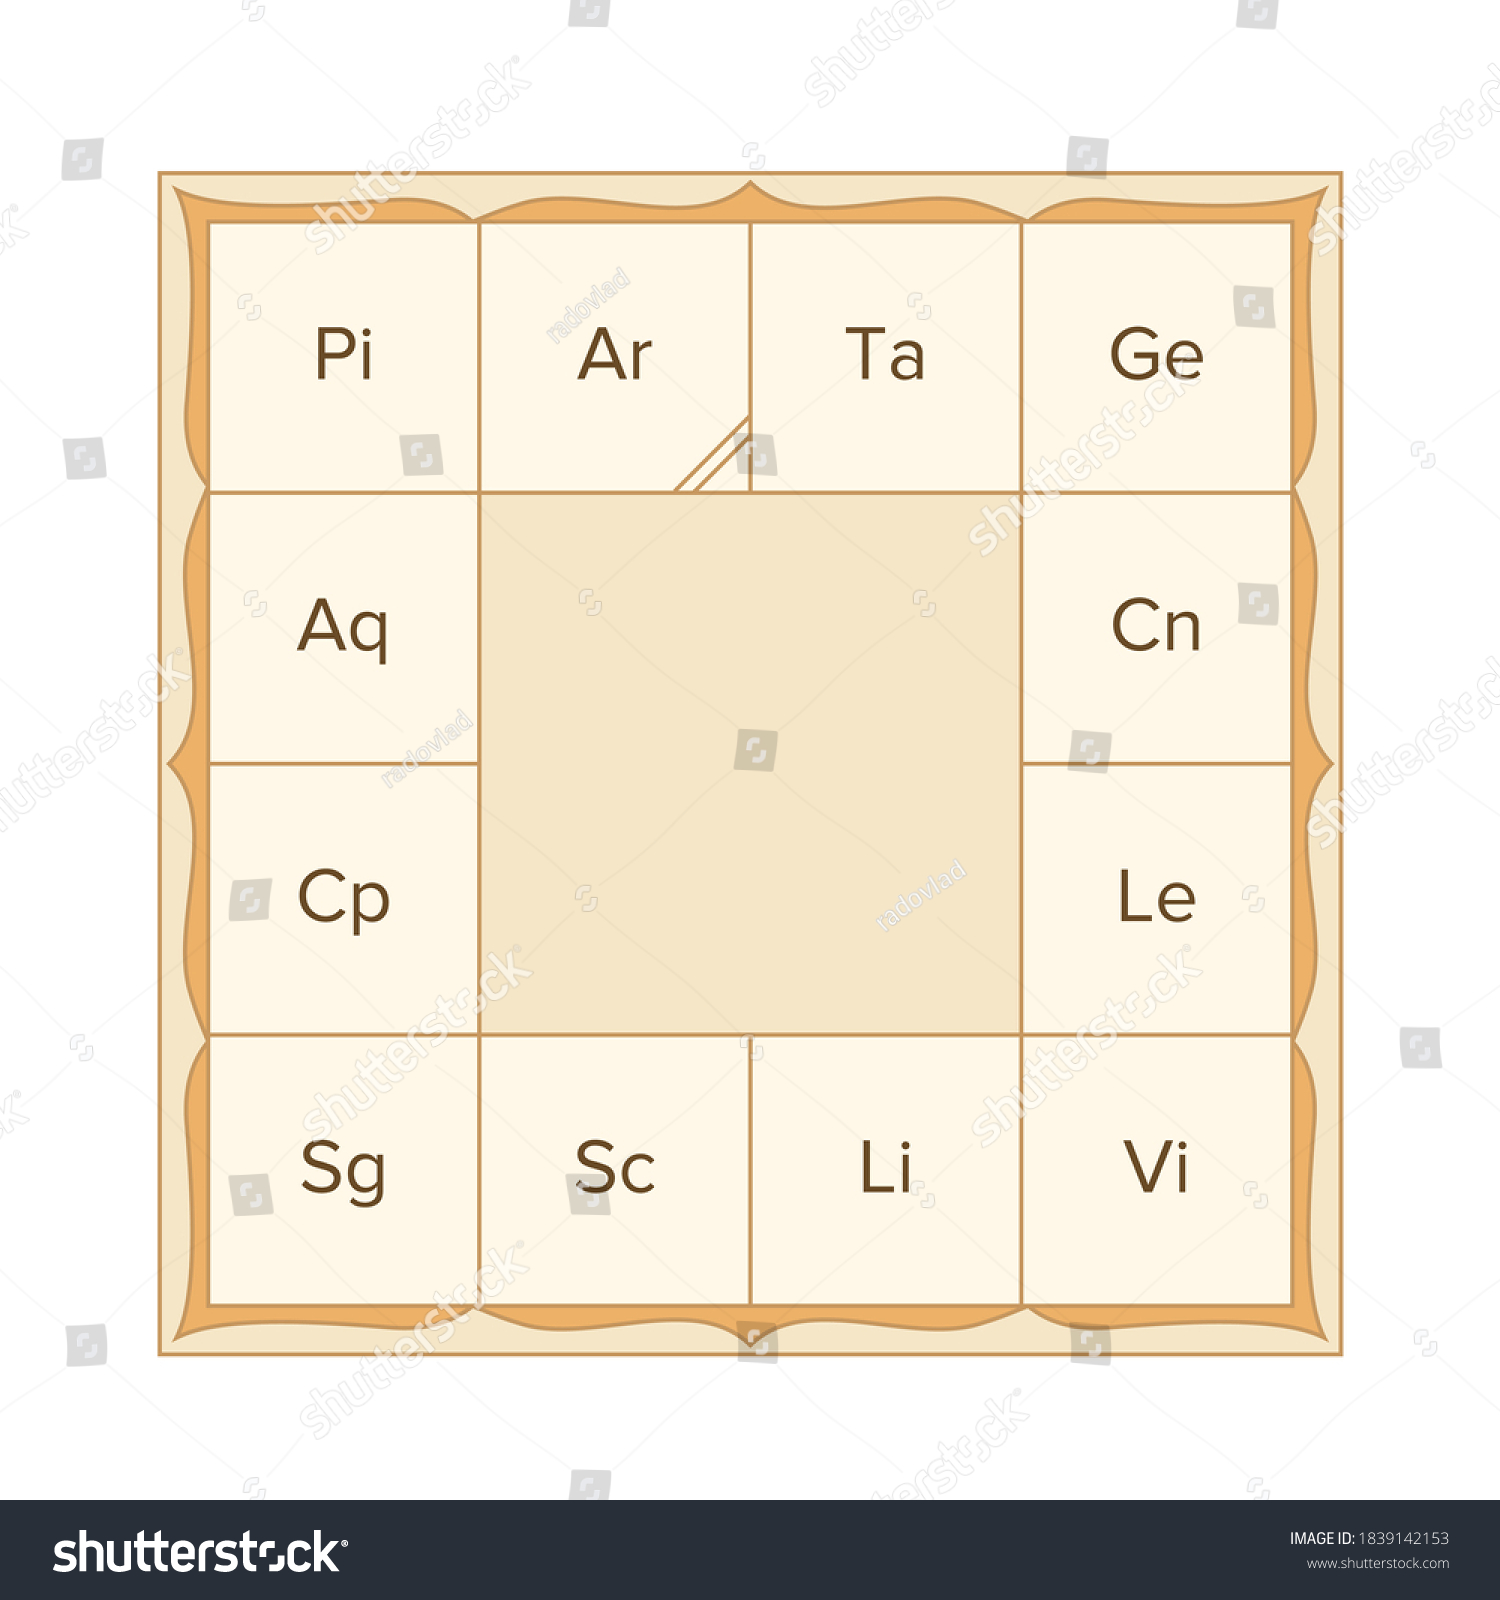 Vedic astrology birth chart template in south   Royalty Free Stock ...